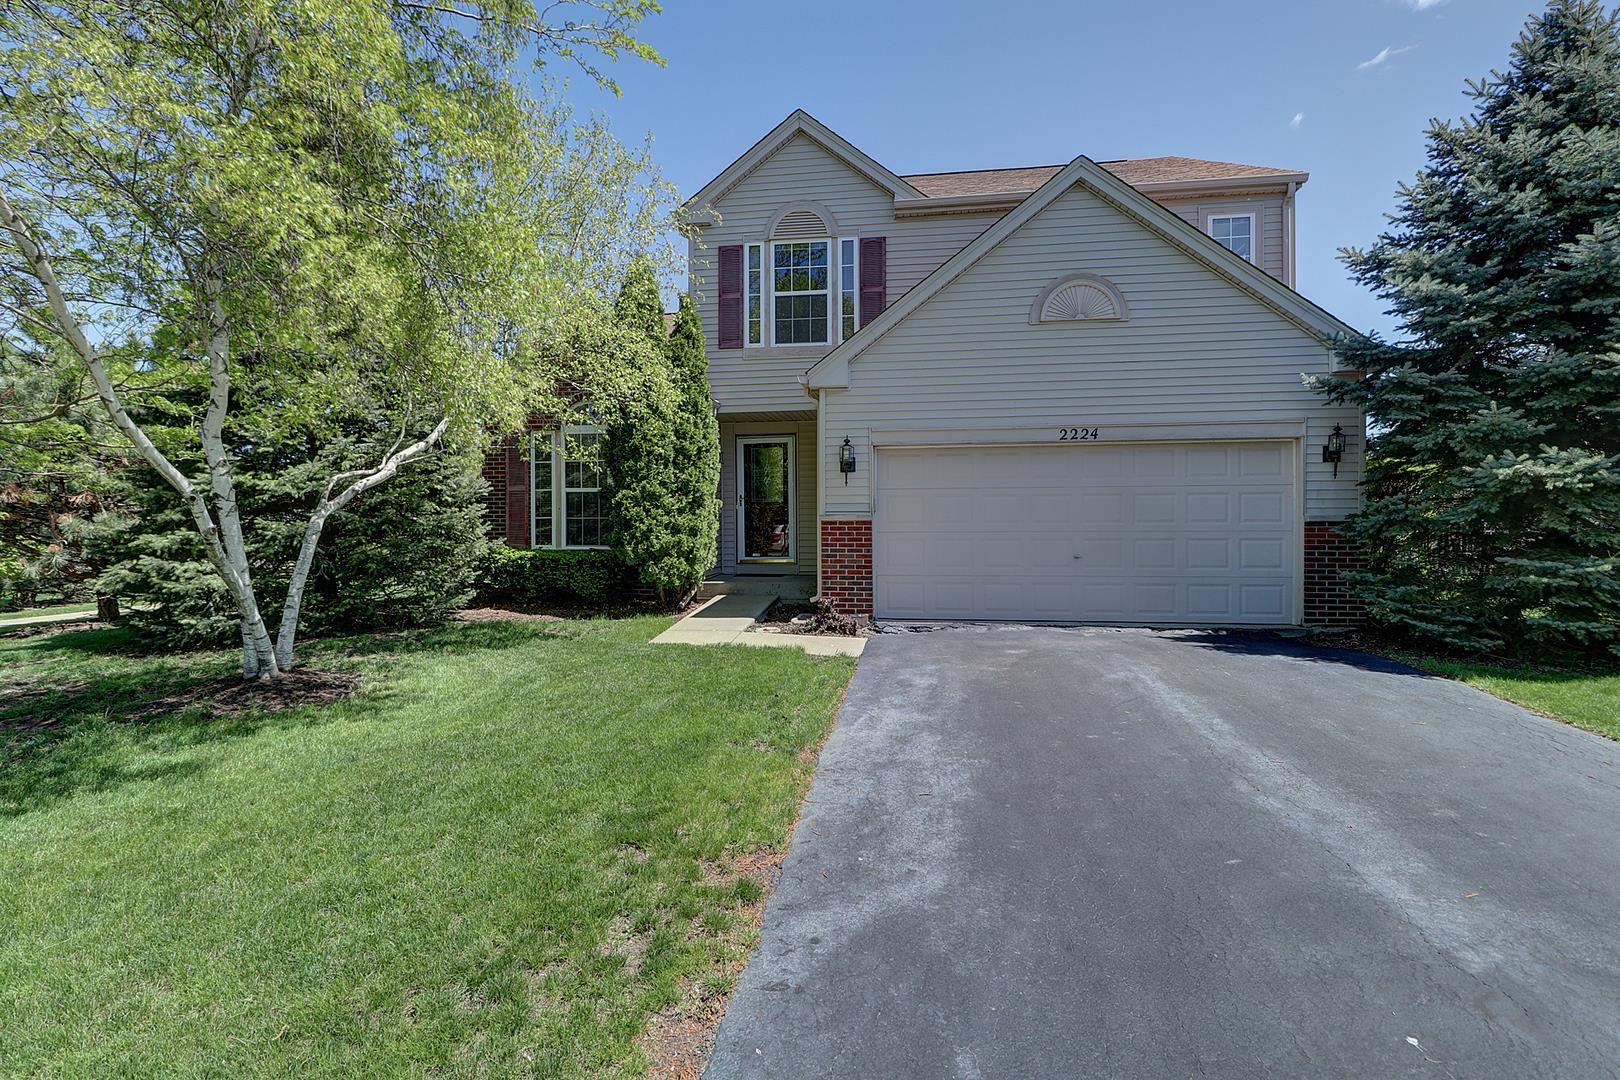 2224 ASHBROOK Lane, Plainfield, IL 60586 - #: 11078083